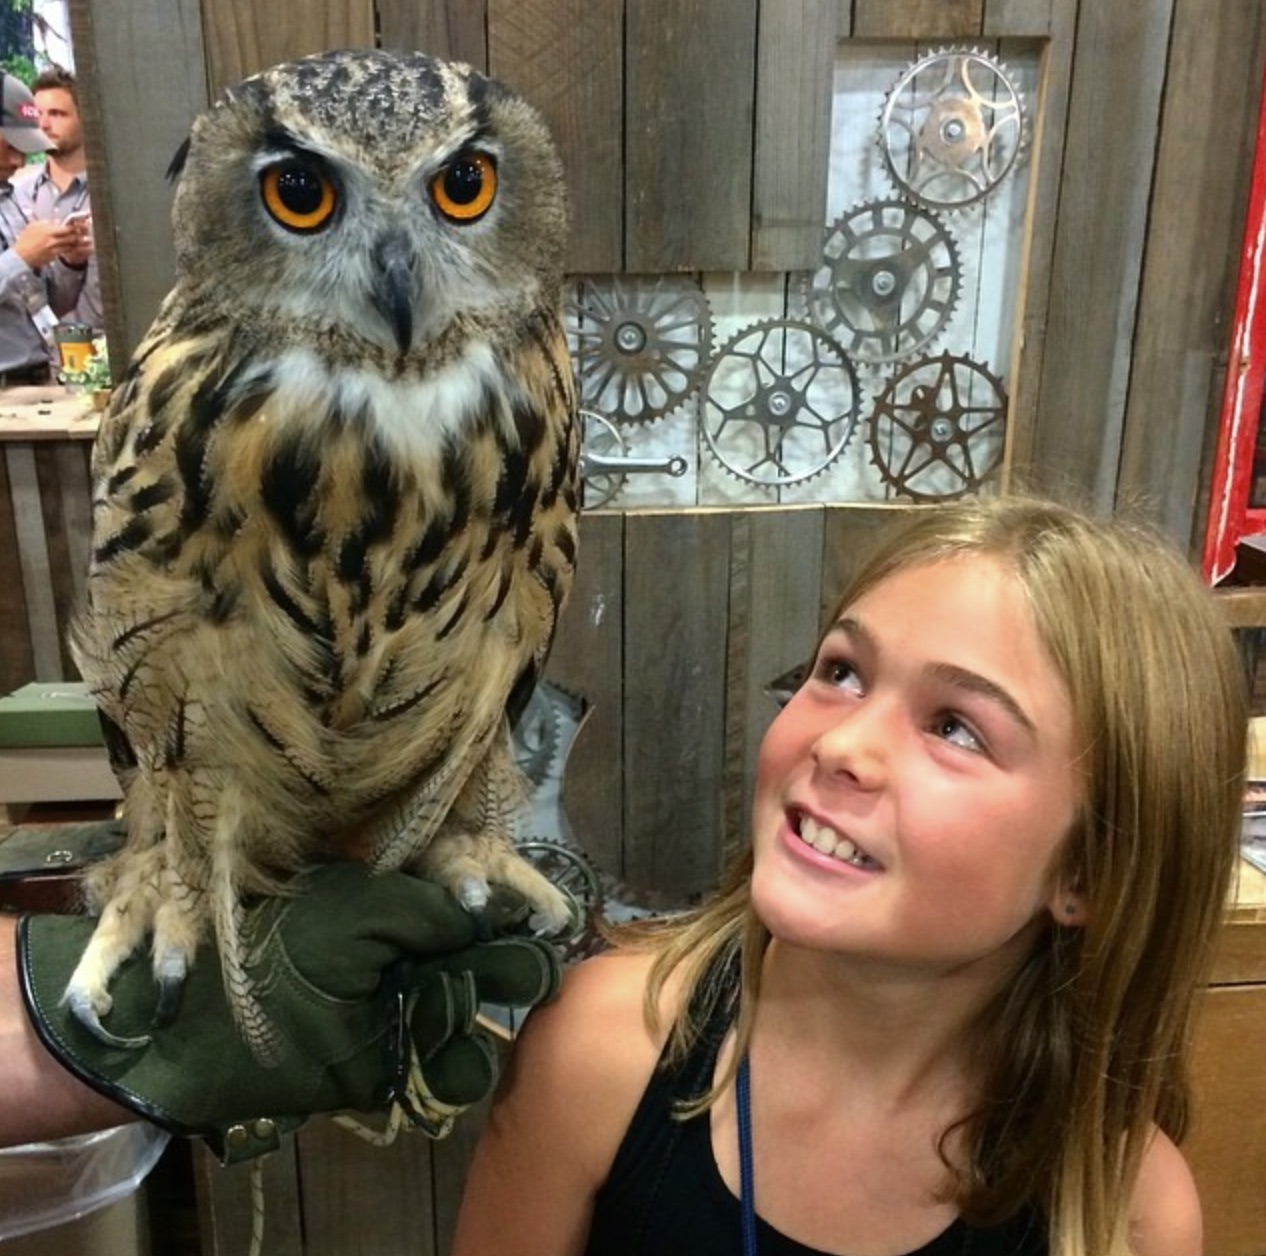 Abby standing next to an owl